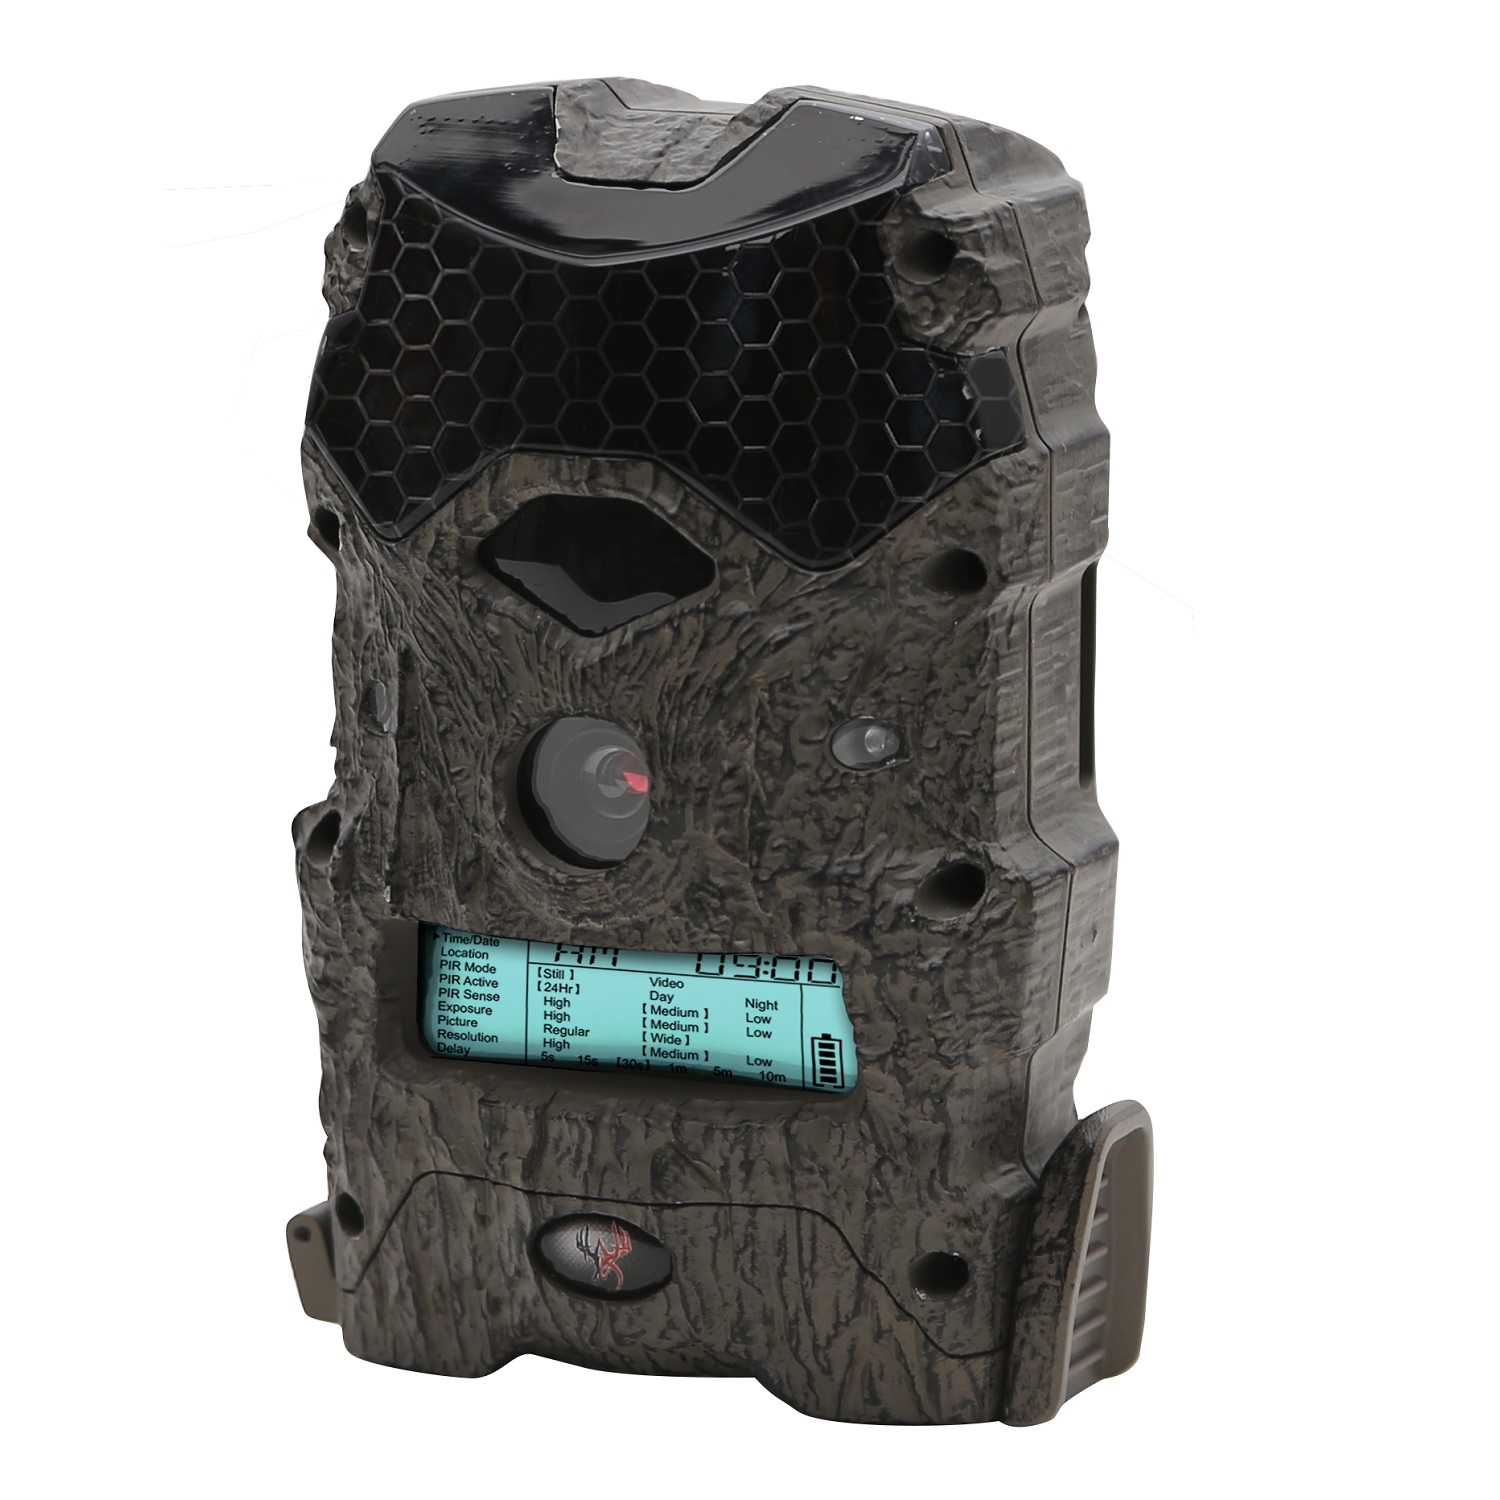 Mirage 16 Lightsout Game Camera by WGI INNOVATIONS LTD